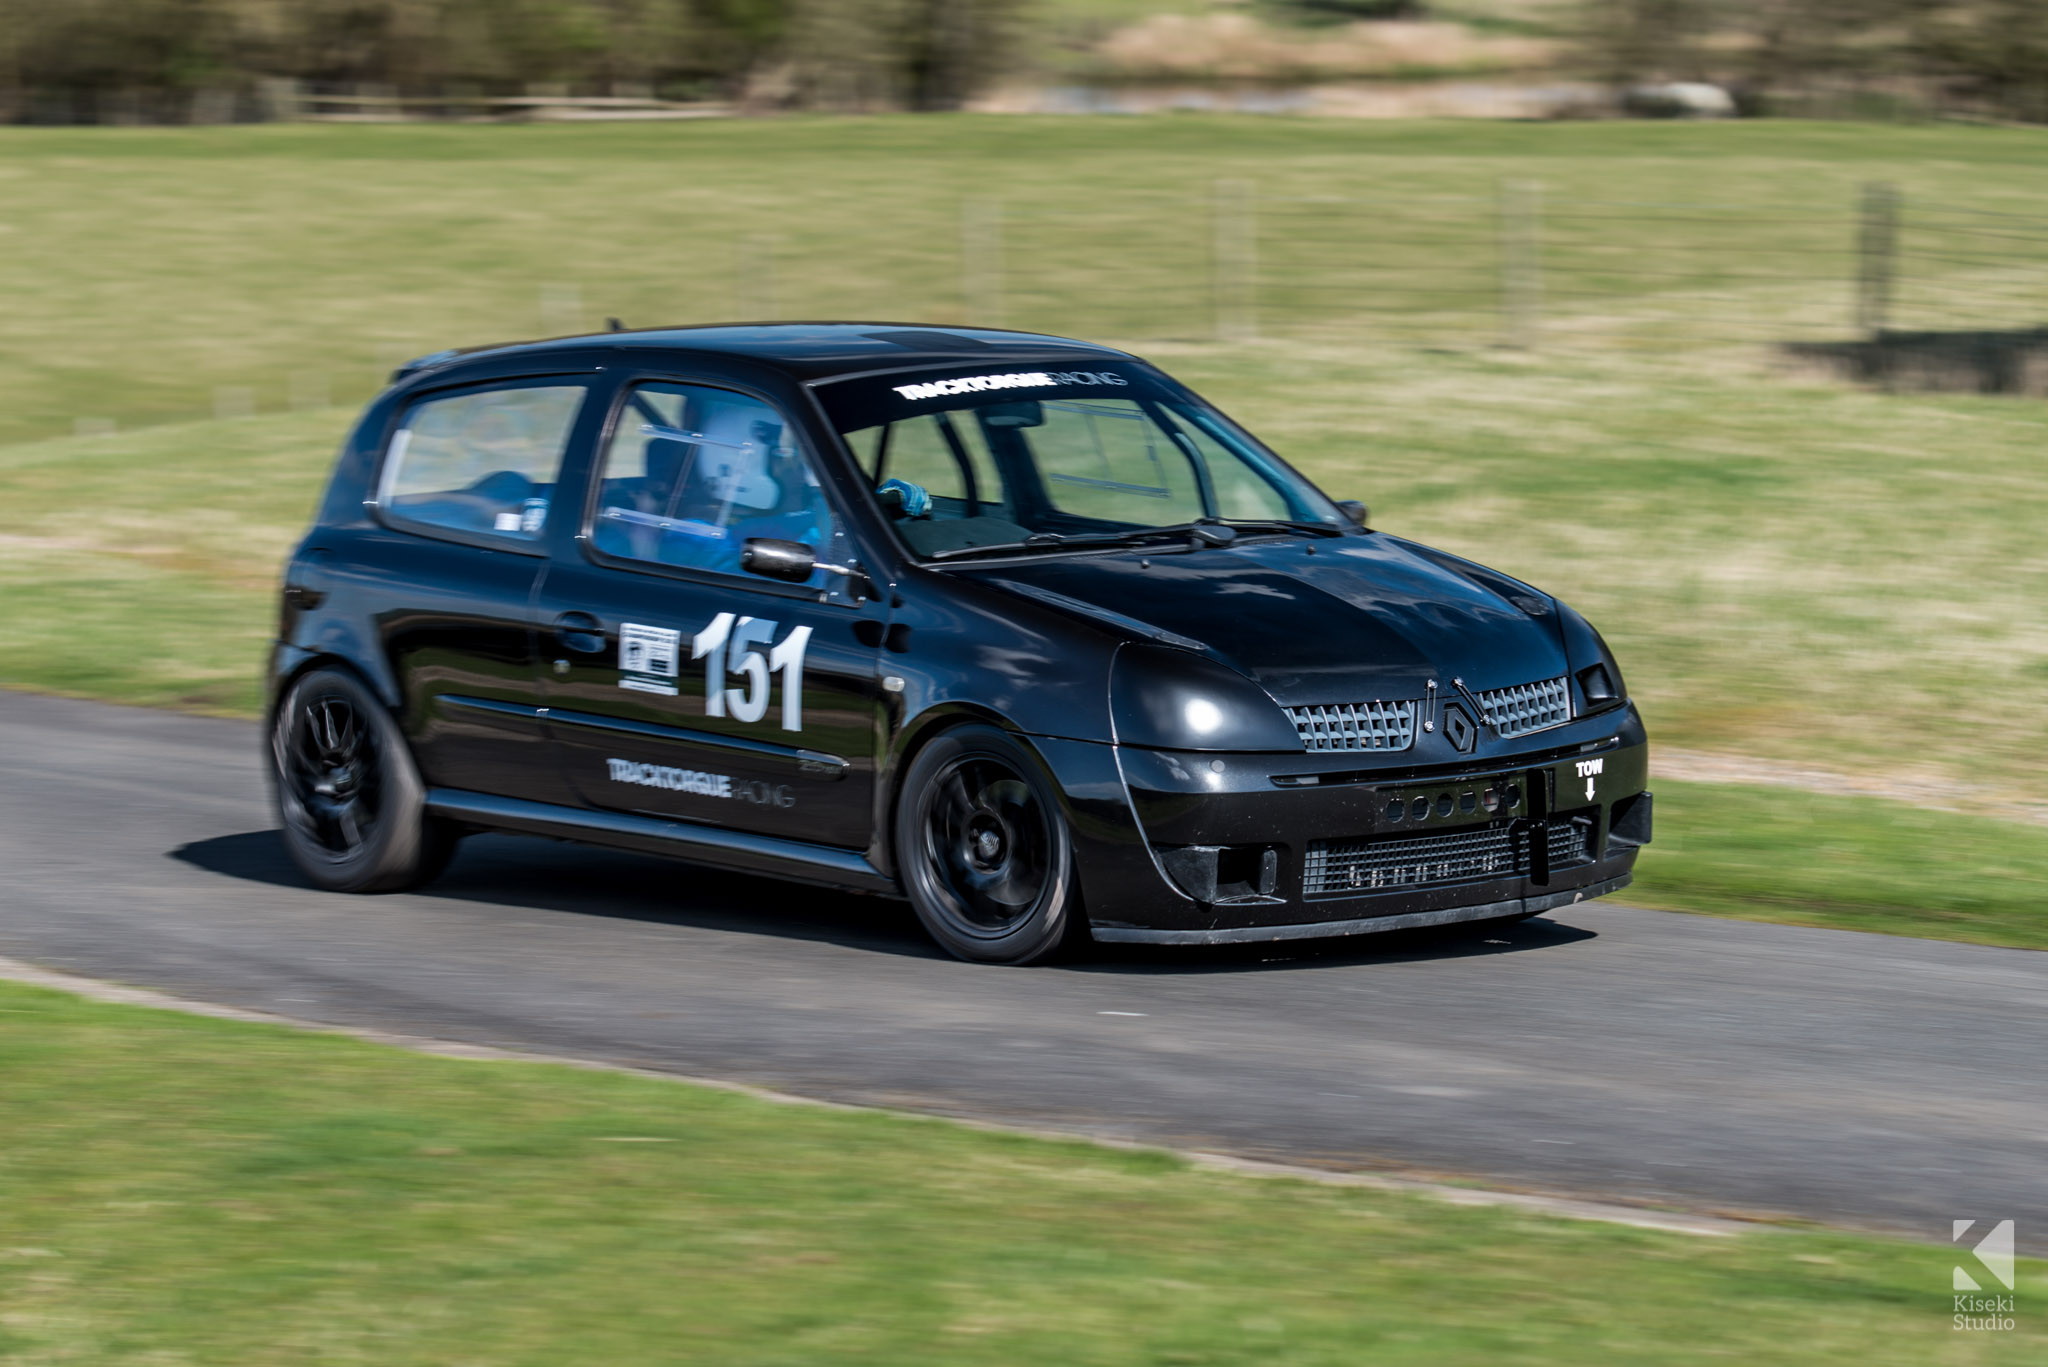 Renault Clio Sport Black Racing at Harewood